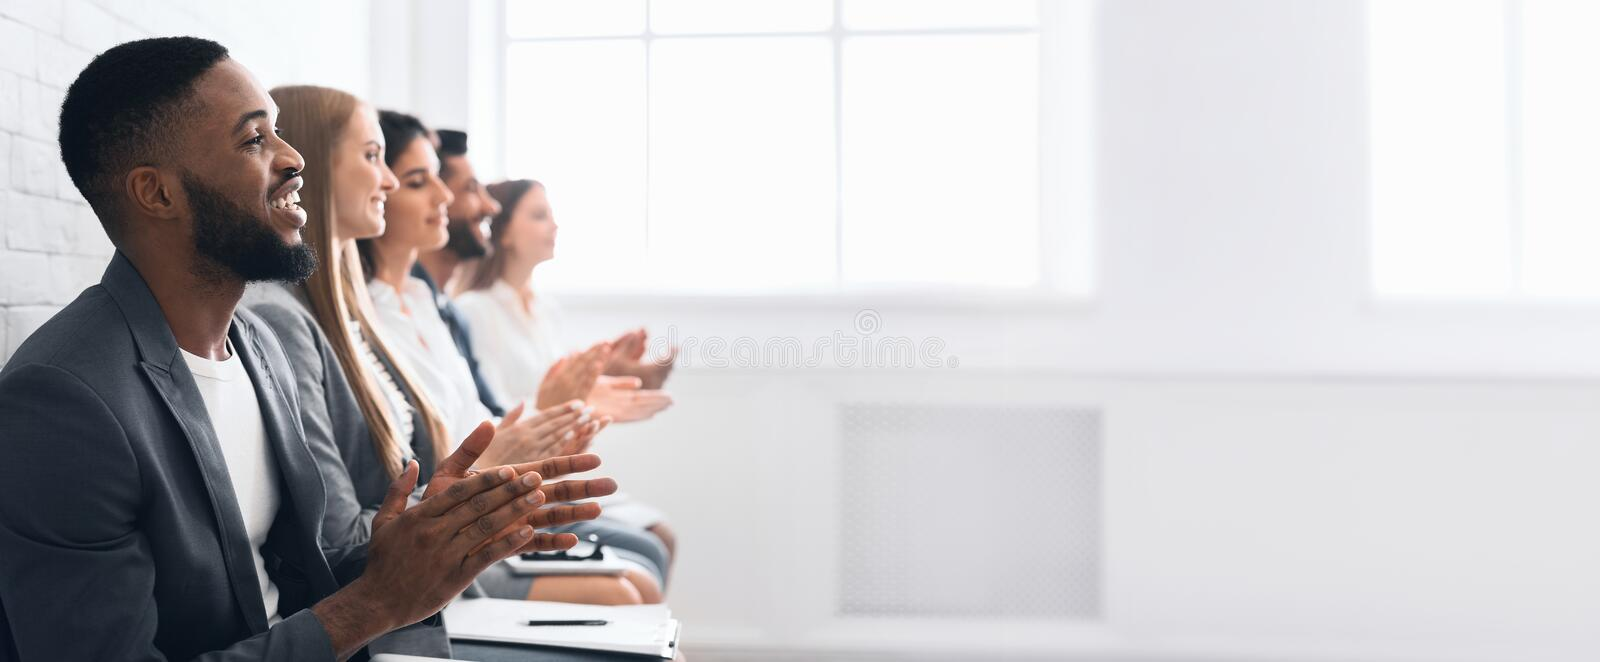 Business people clapping hands after business seminar stock photography